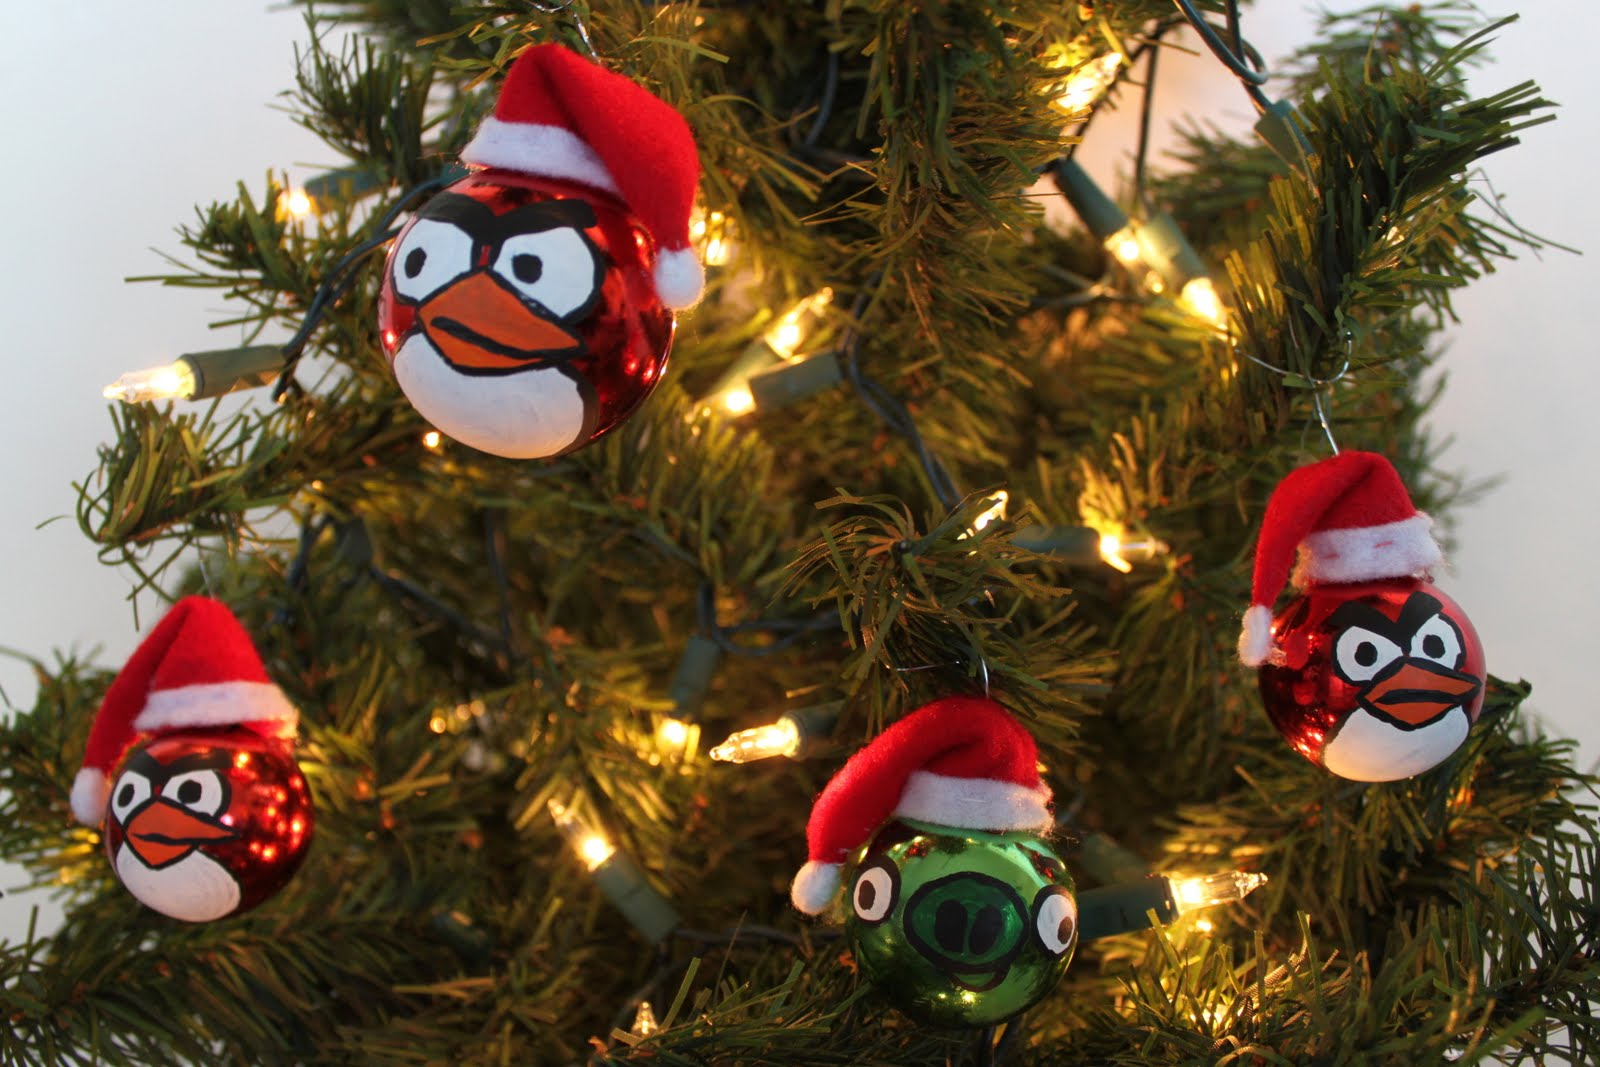 Angry Birds Still The Hottest Series In Mobile With Awesome Holiday Push